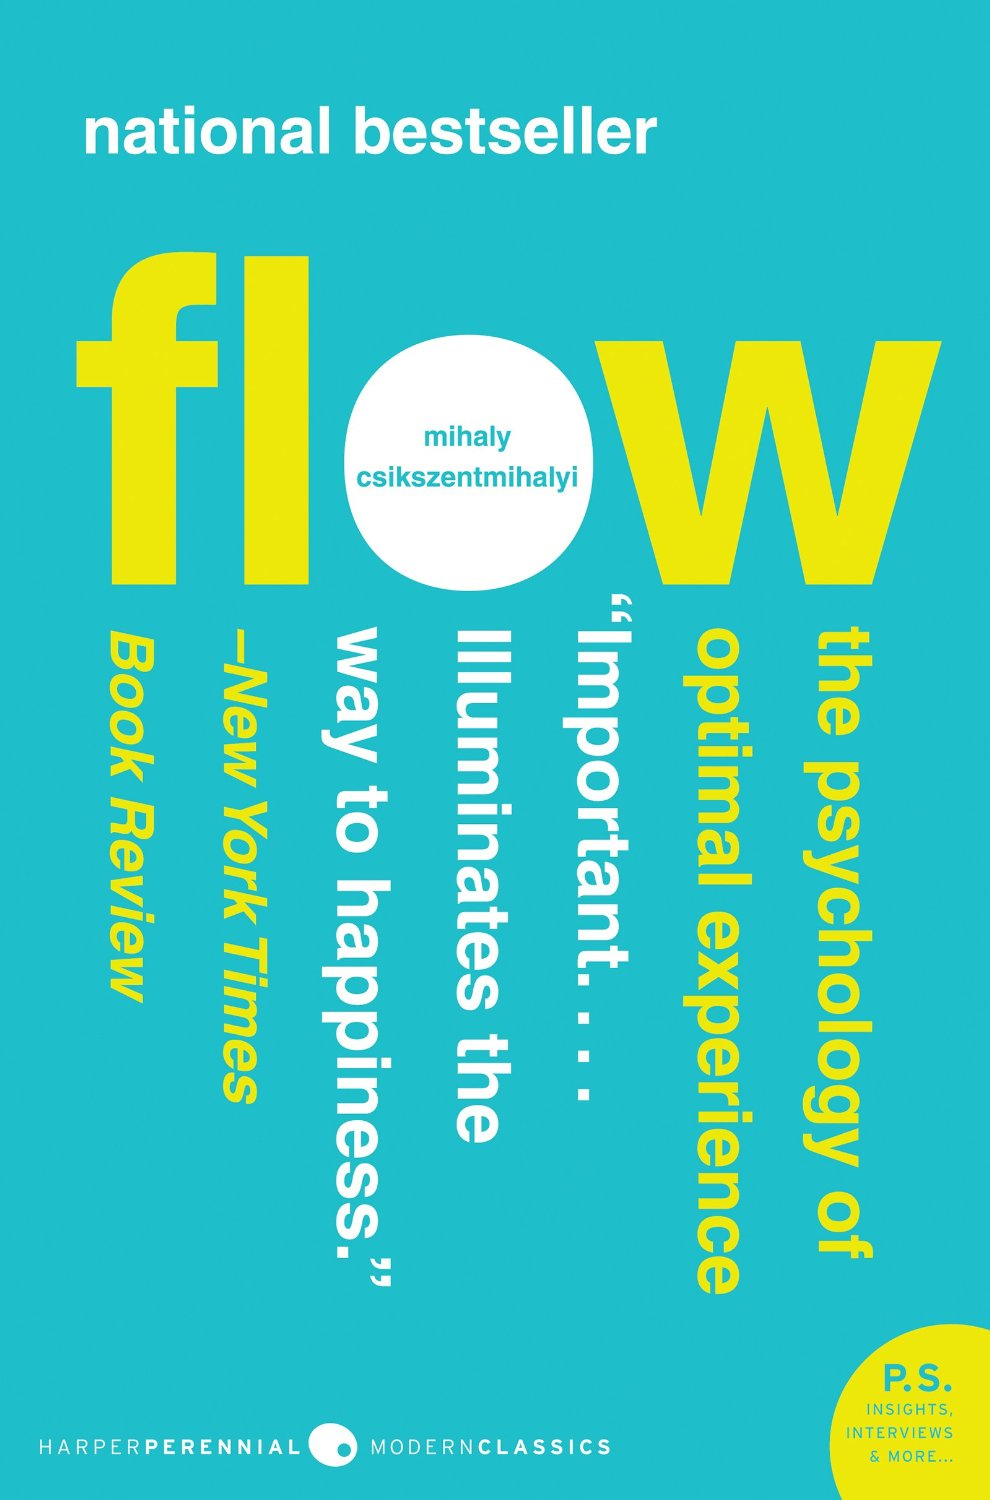 flow-mihaly-book-cover